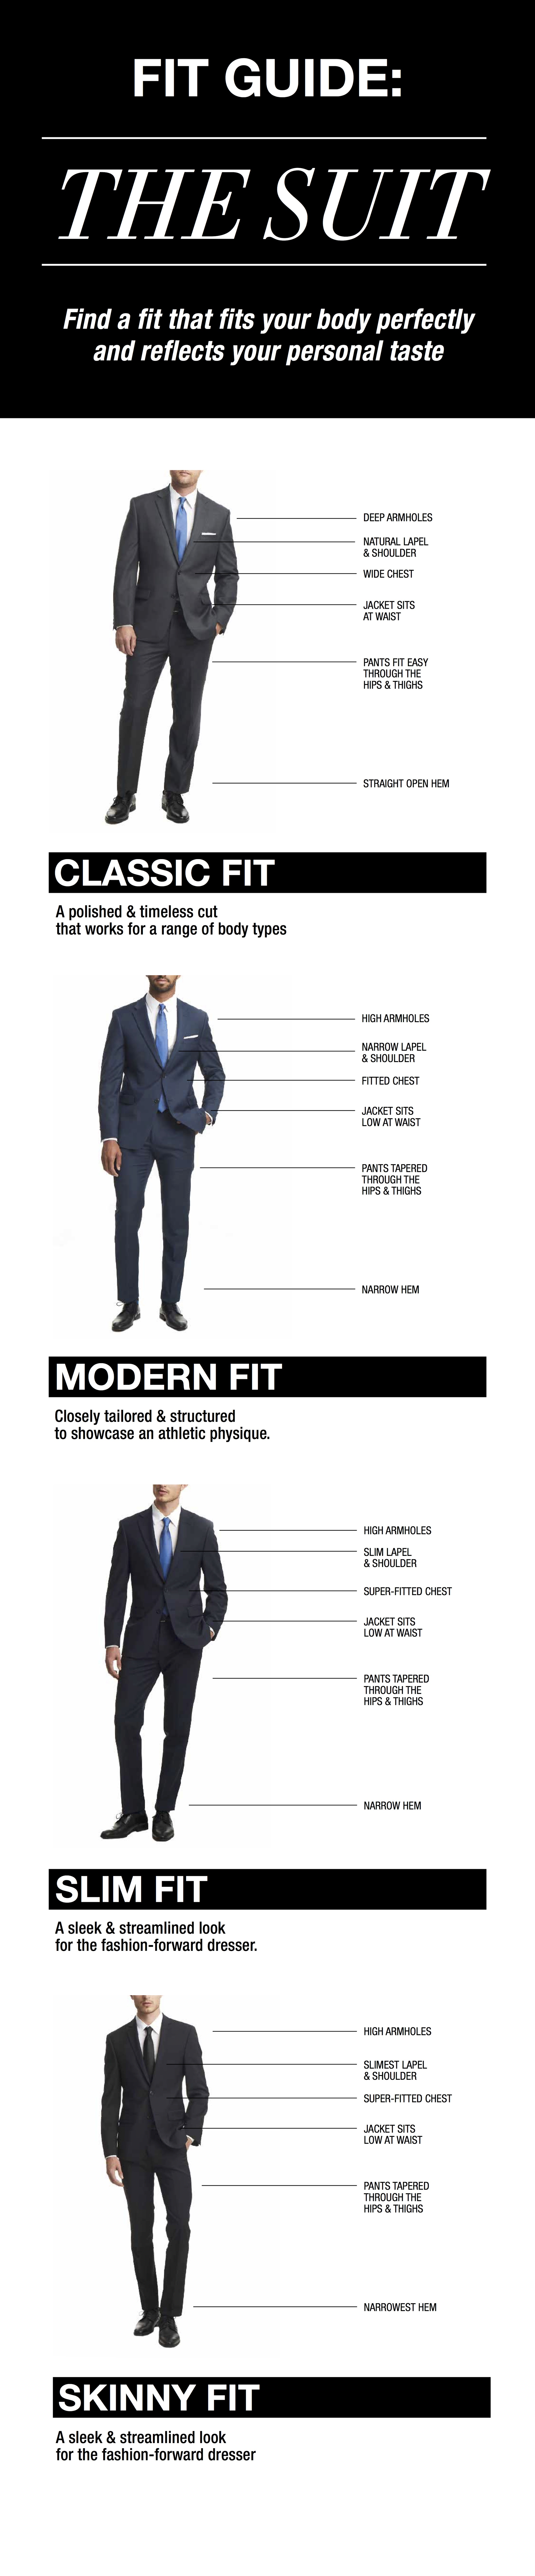 2018_Q2_Mens_FitGuide_Suits_16x77.jpg